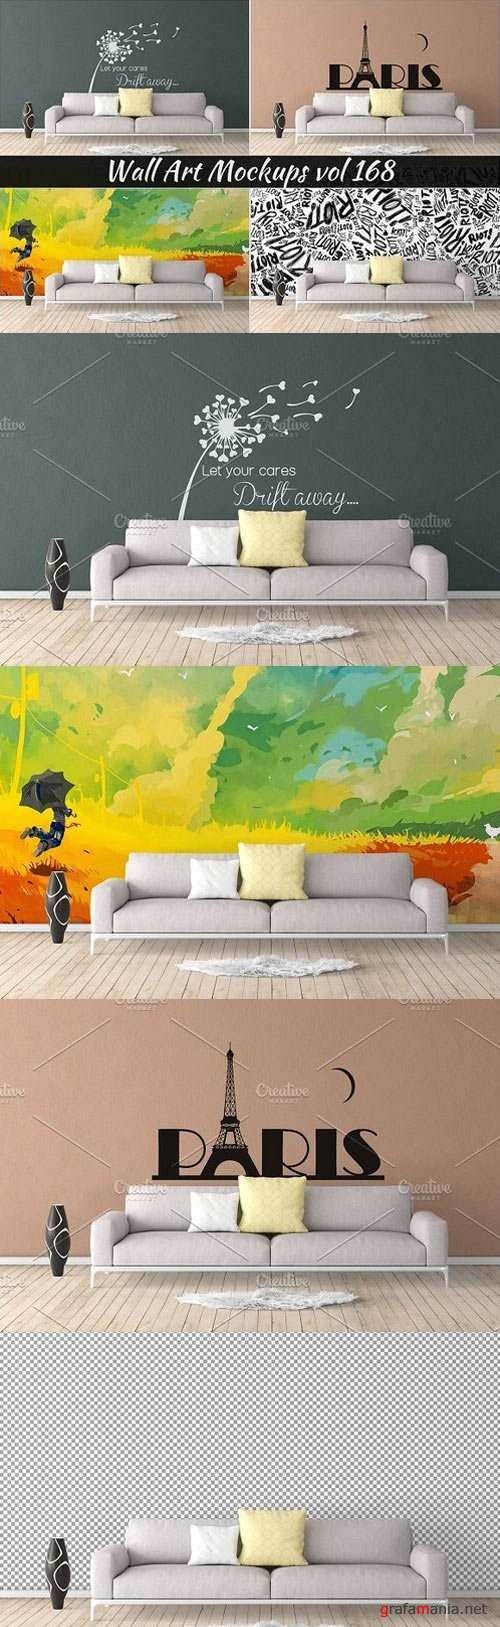 Wall Mockup - Sticker Mockup Vol 168 1115471